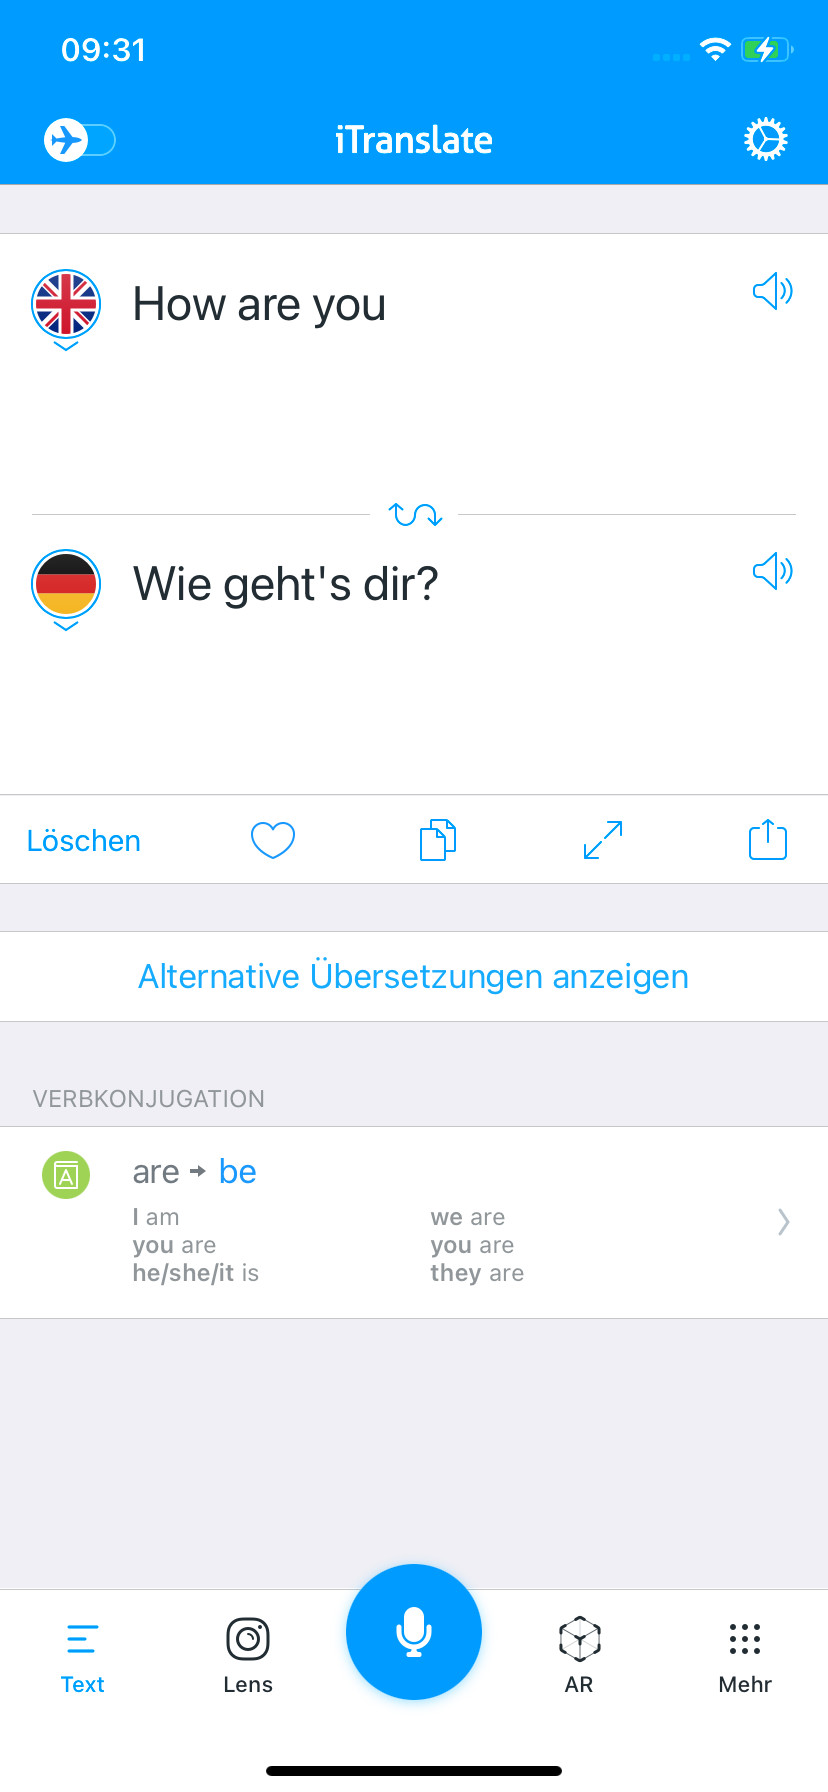 Screenshot 1 - iTranslate Übersetzer (App für iPhone & iPad)